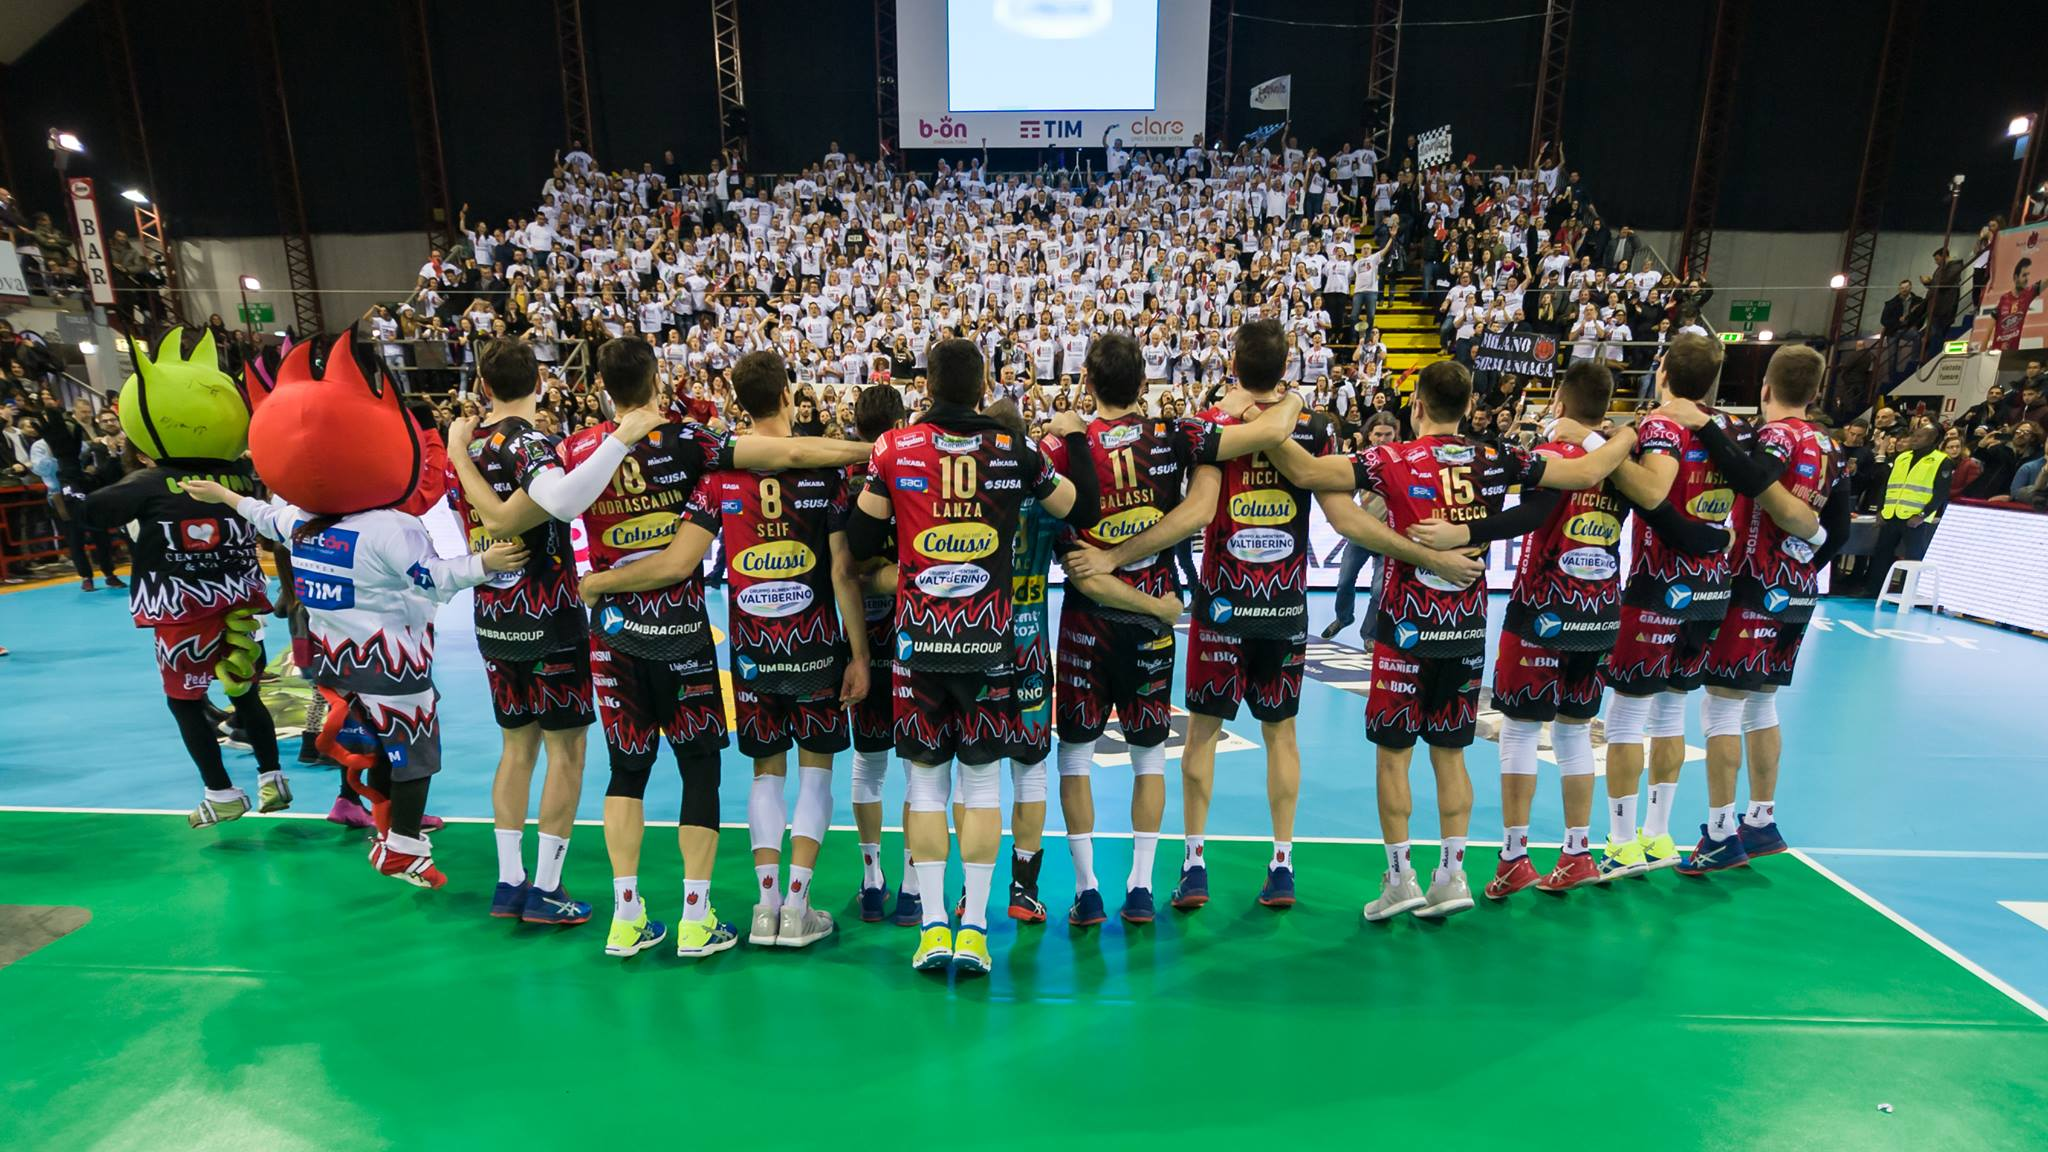 Sir Safety Perugia a Roma per i playoff Scudetto